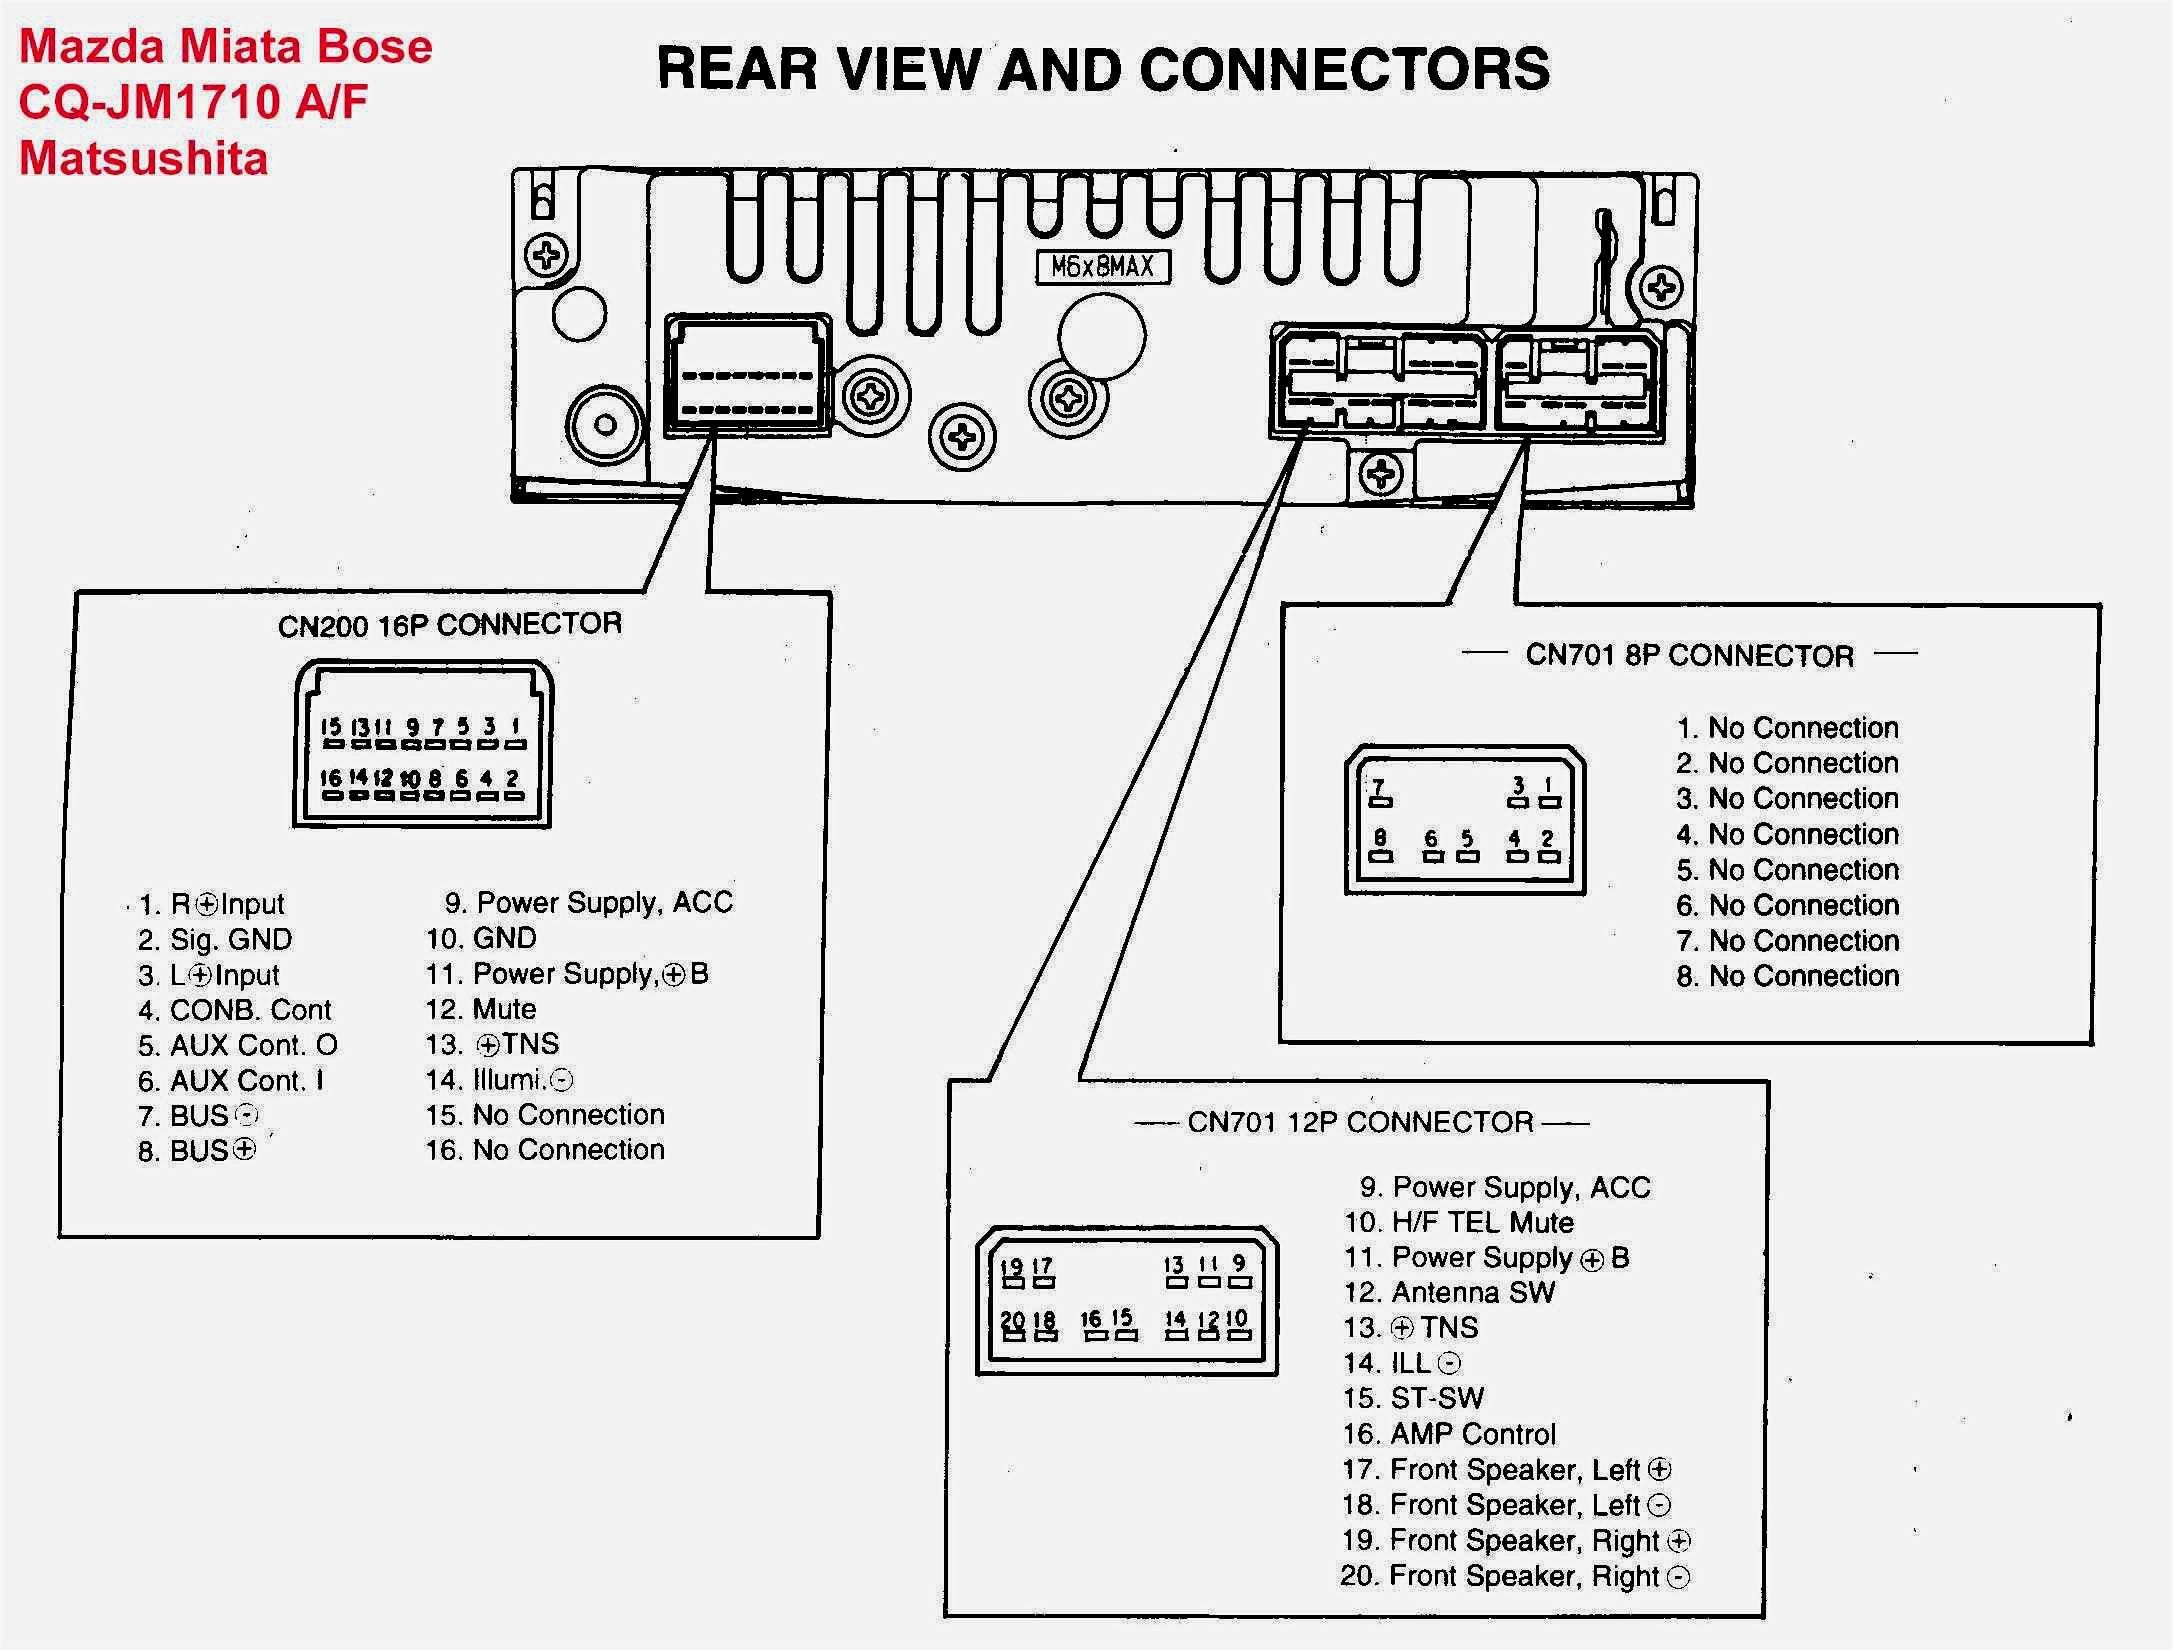 Wiring Diagram For Pioneer Deh X3500Ui | Manual E-Books - Pioneer Deh X3500Ui Wiring Diagram